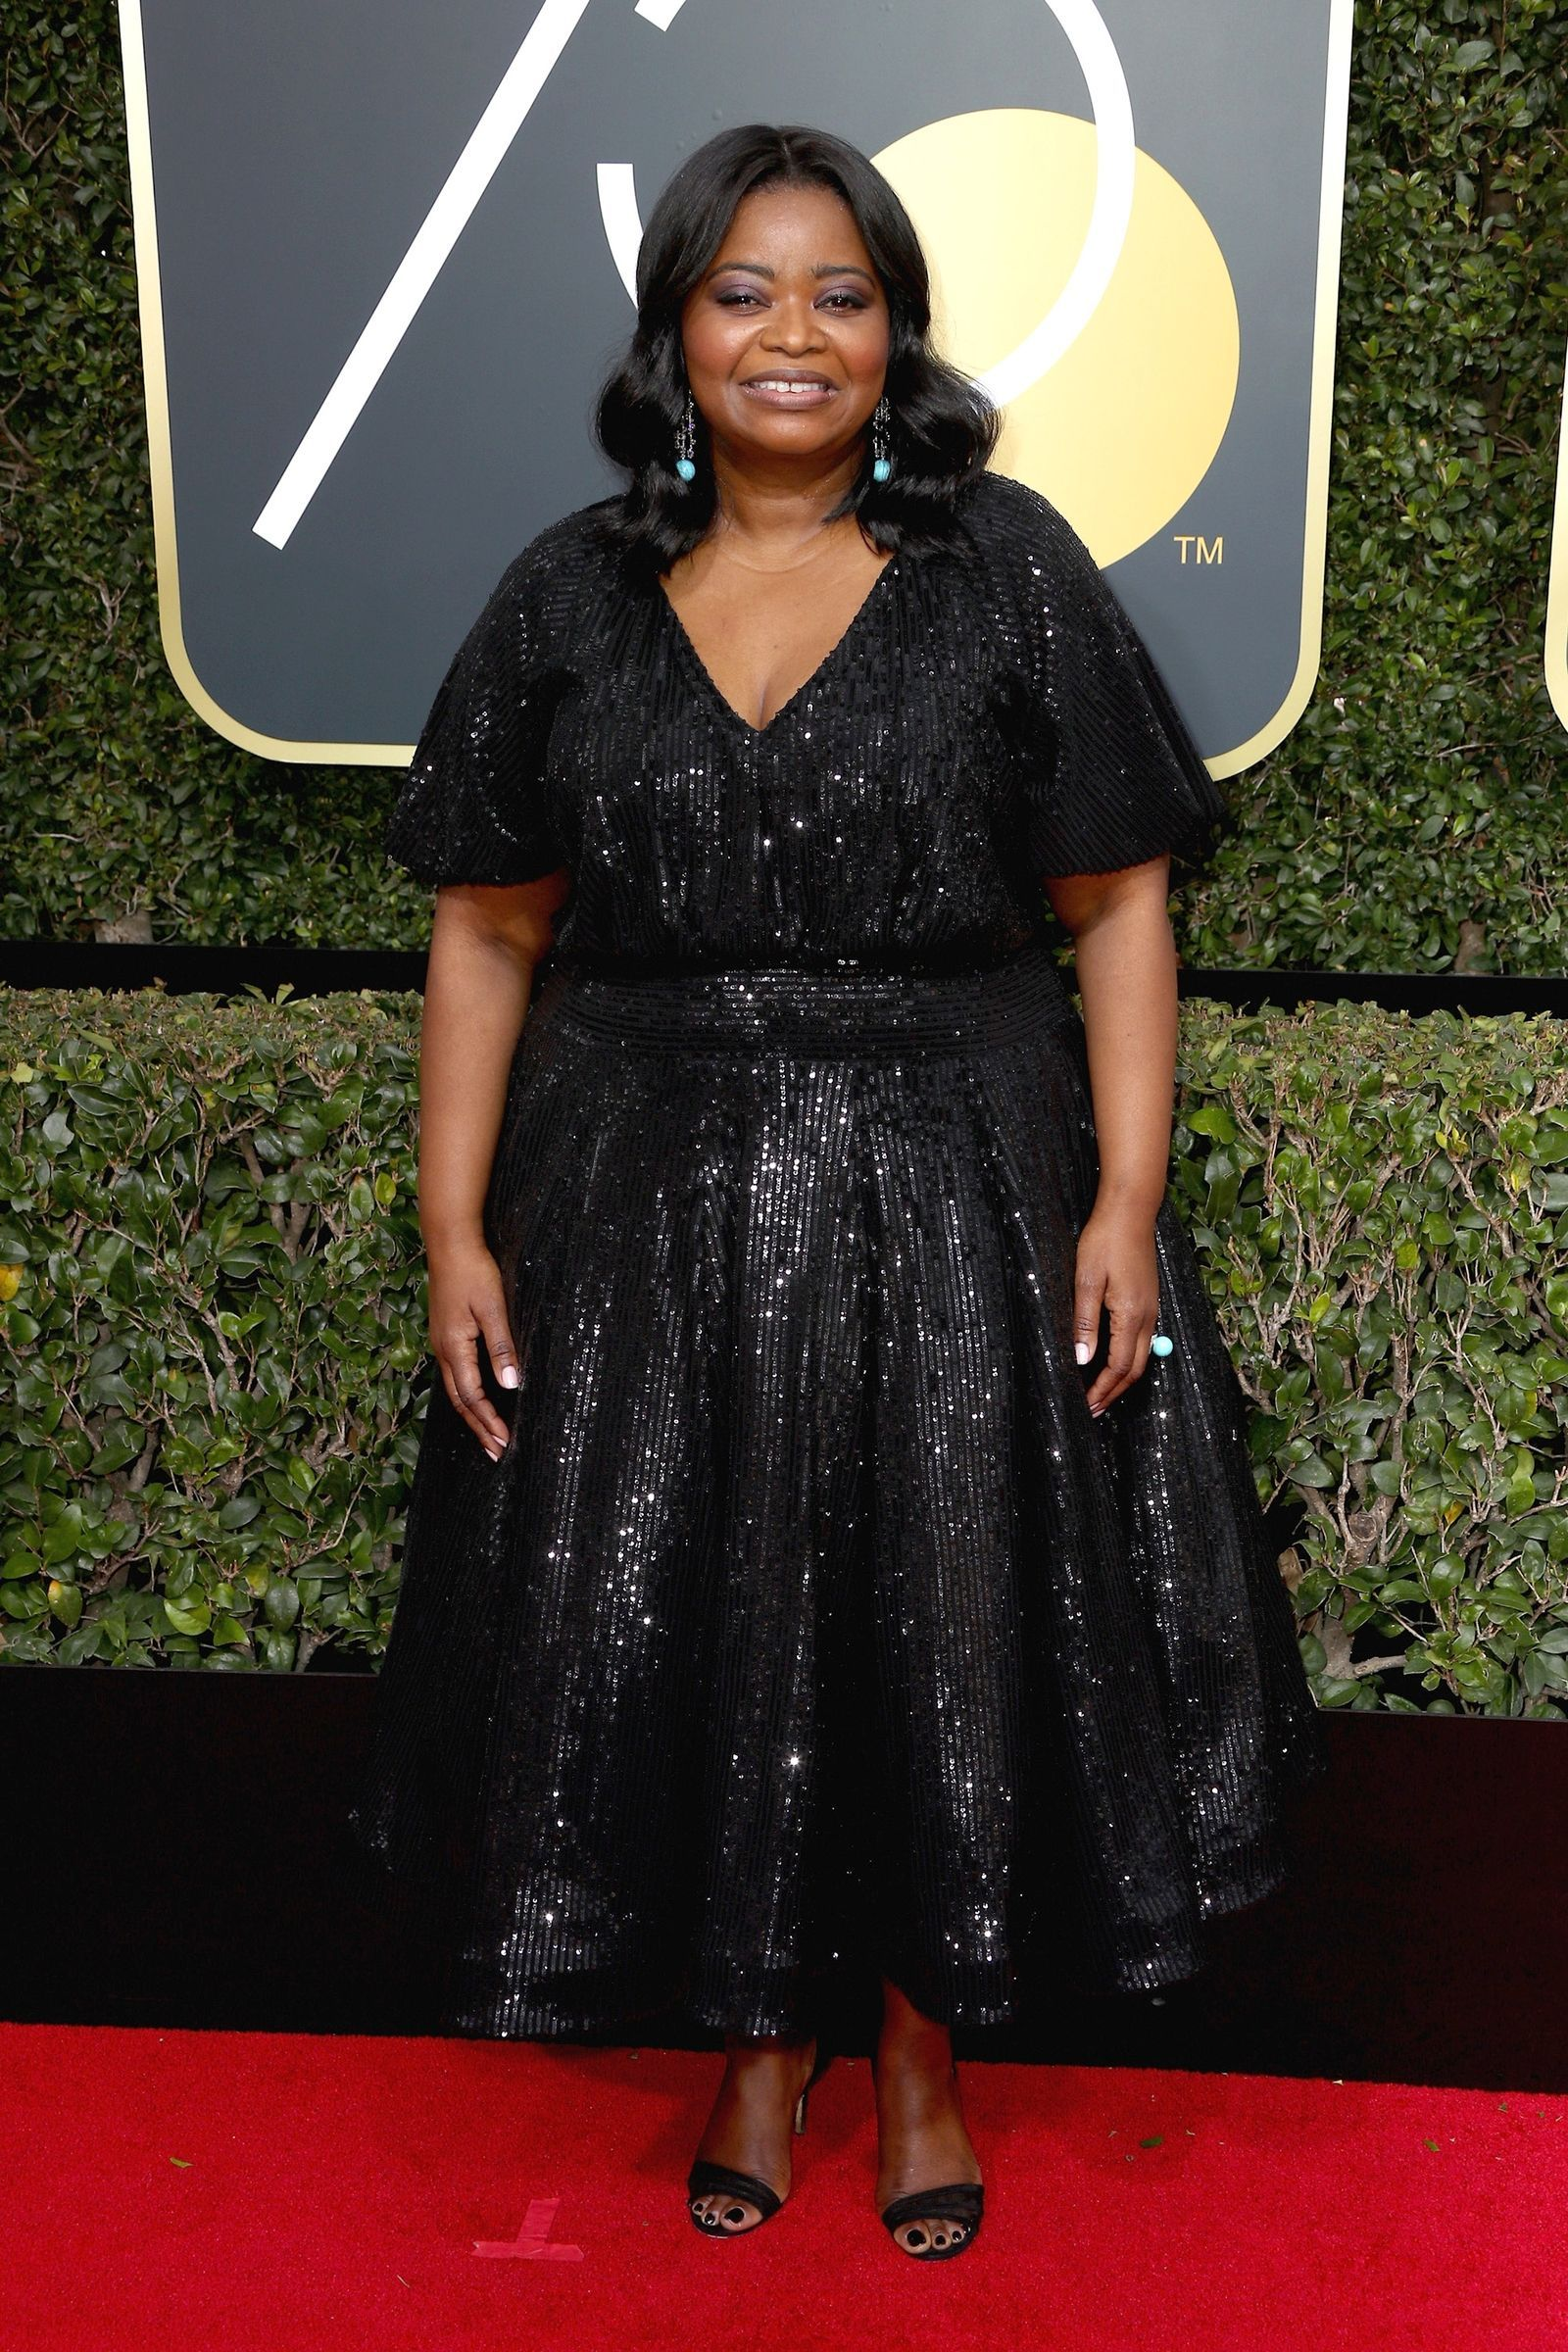 ef81df7e35a The Best of the Golden Globes 2018 Red Carpet Arrivals